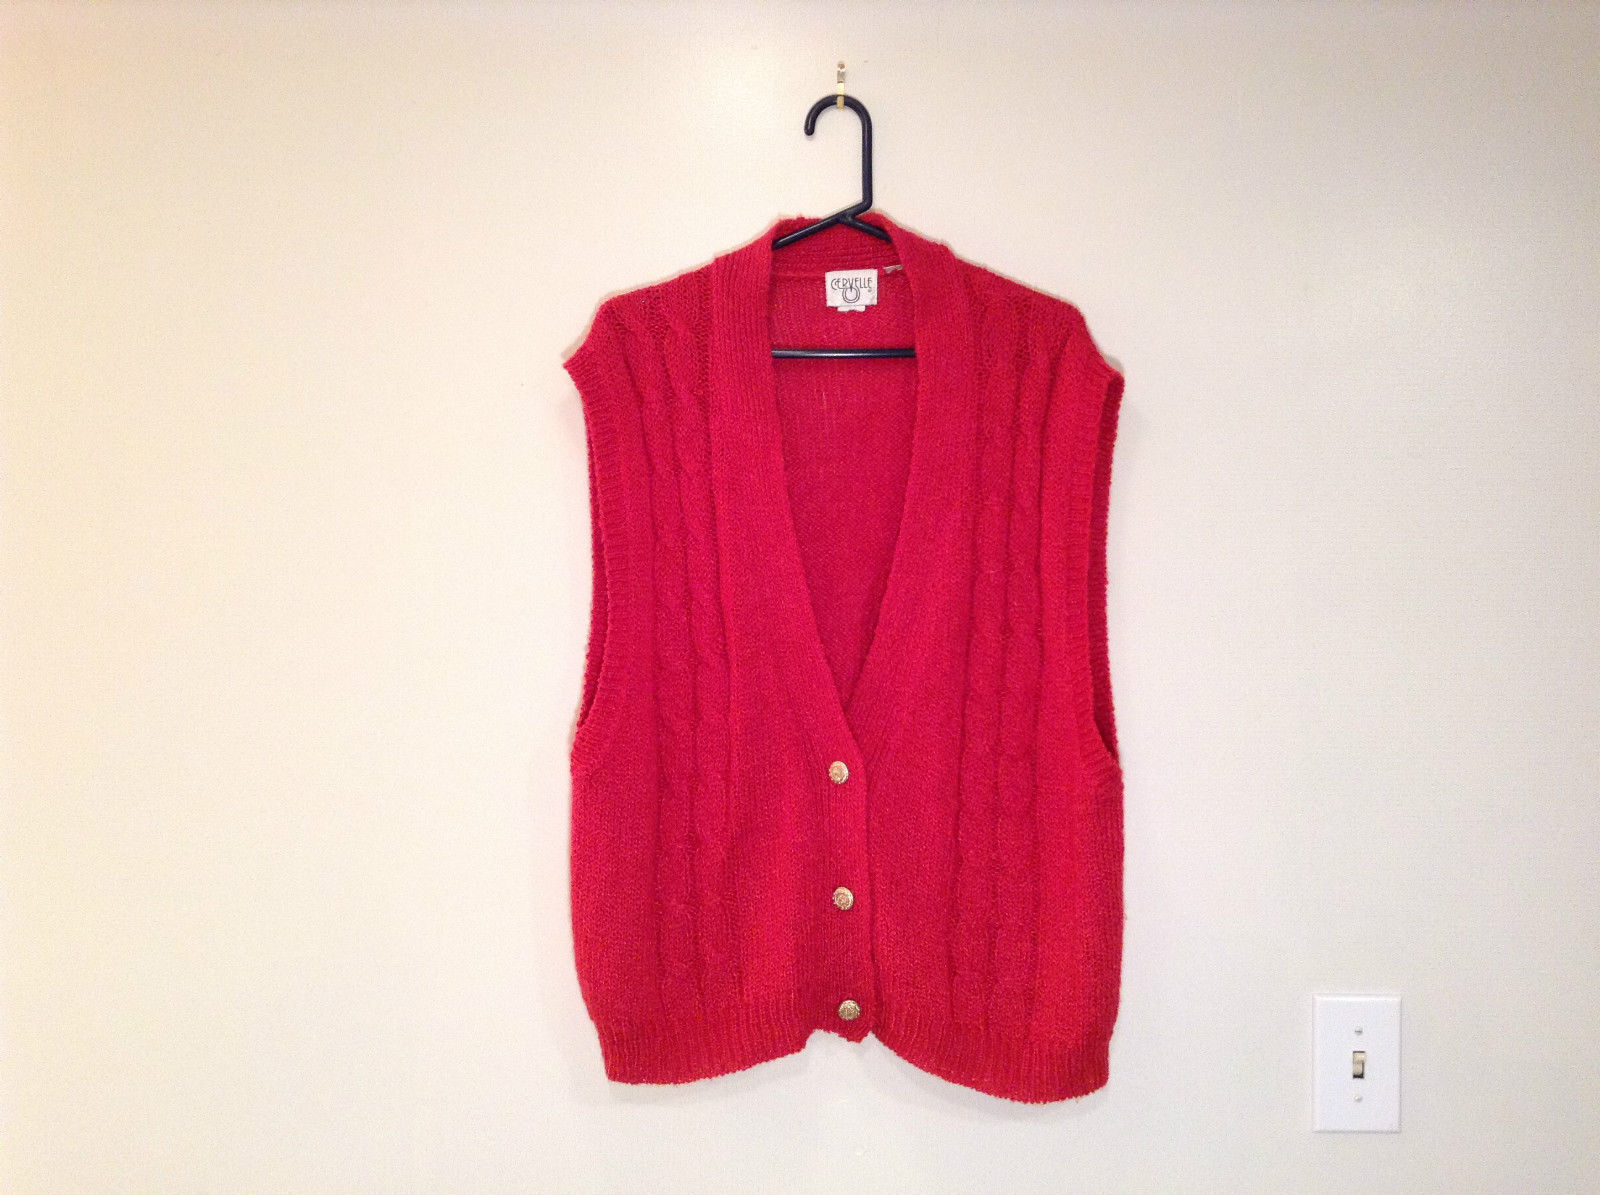 Three Button Closure V Neck Red Knitted Sleeveless Vest Cervelle No Size Tag